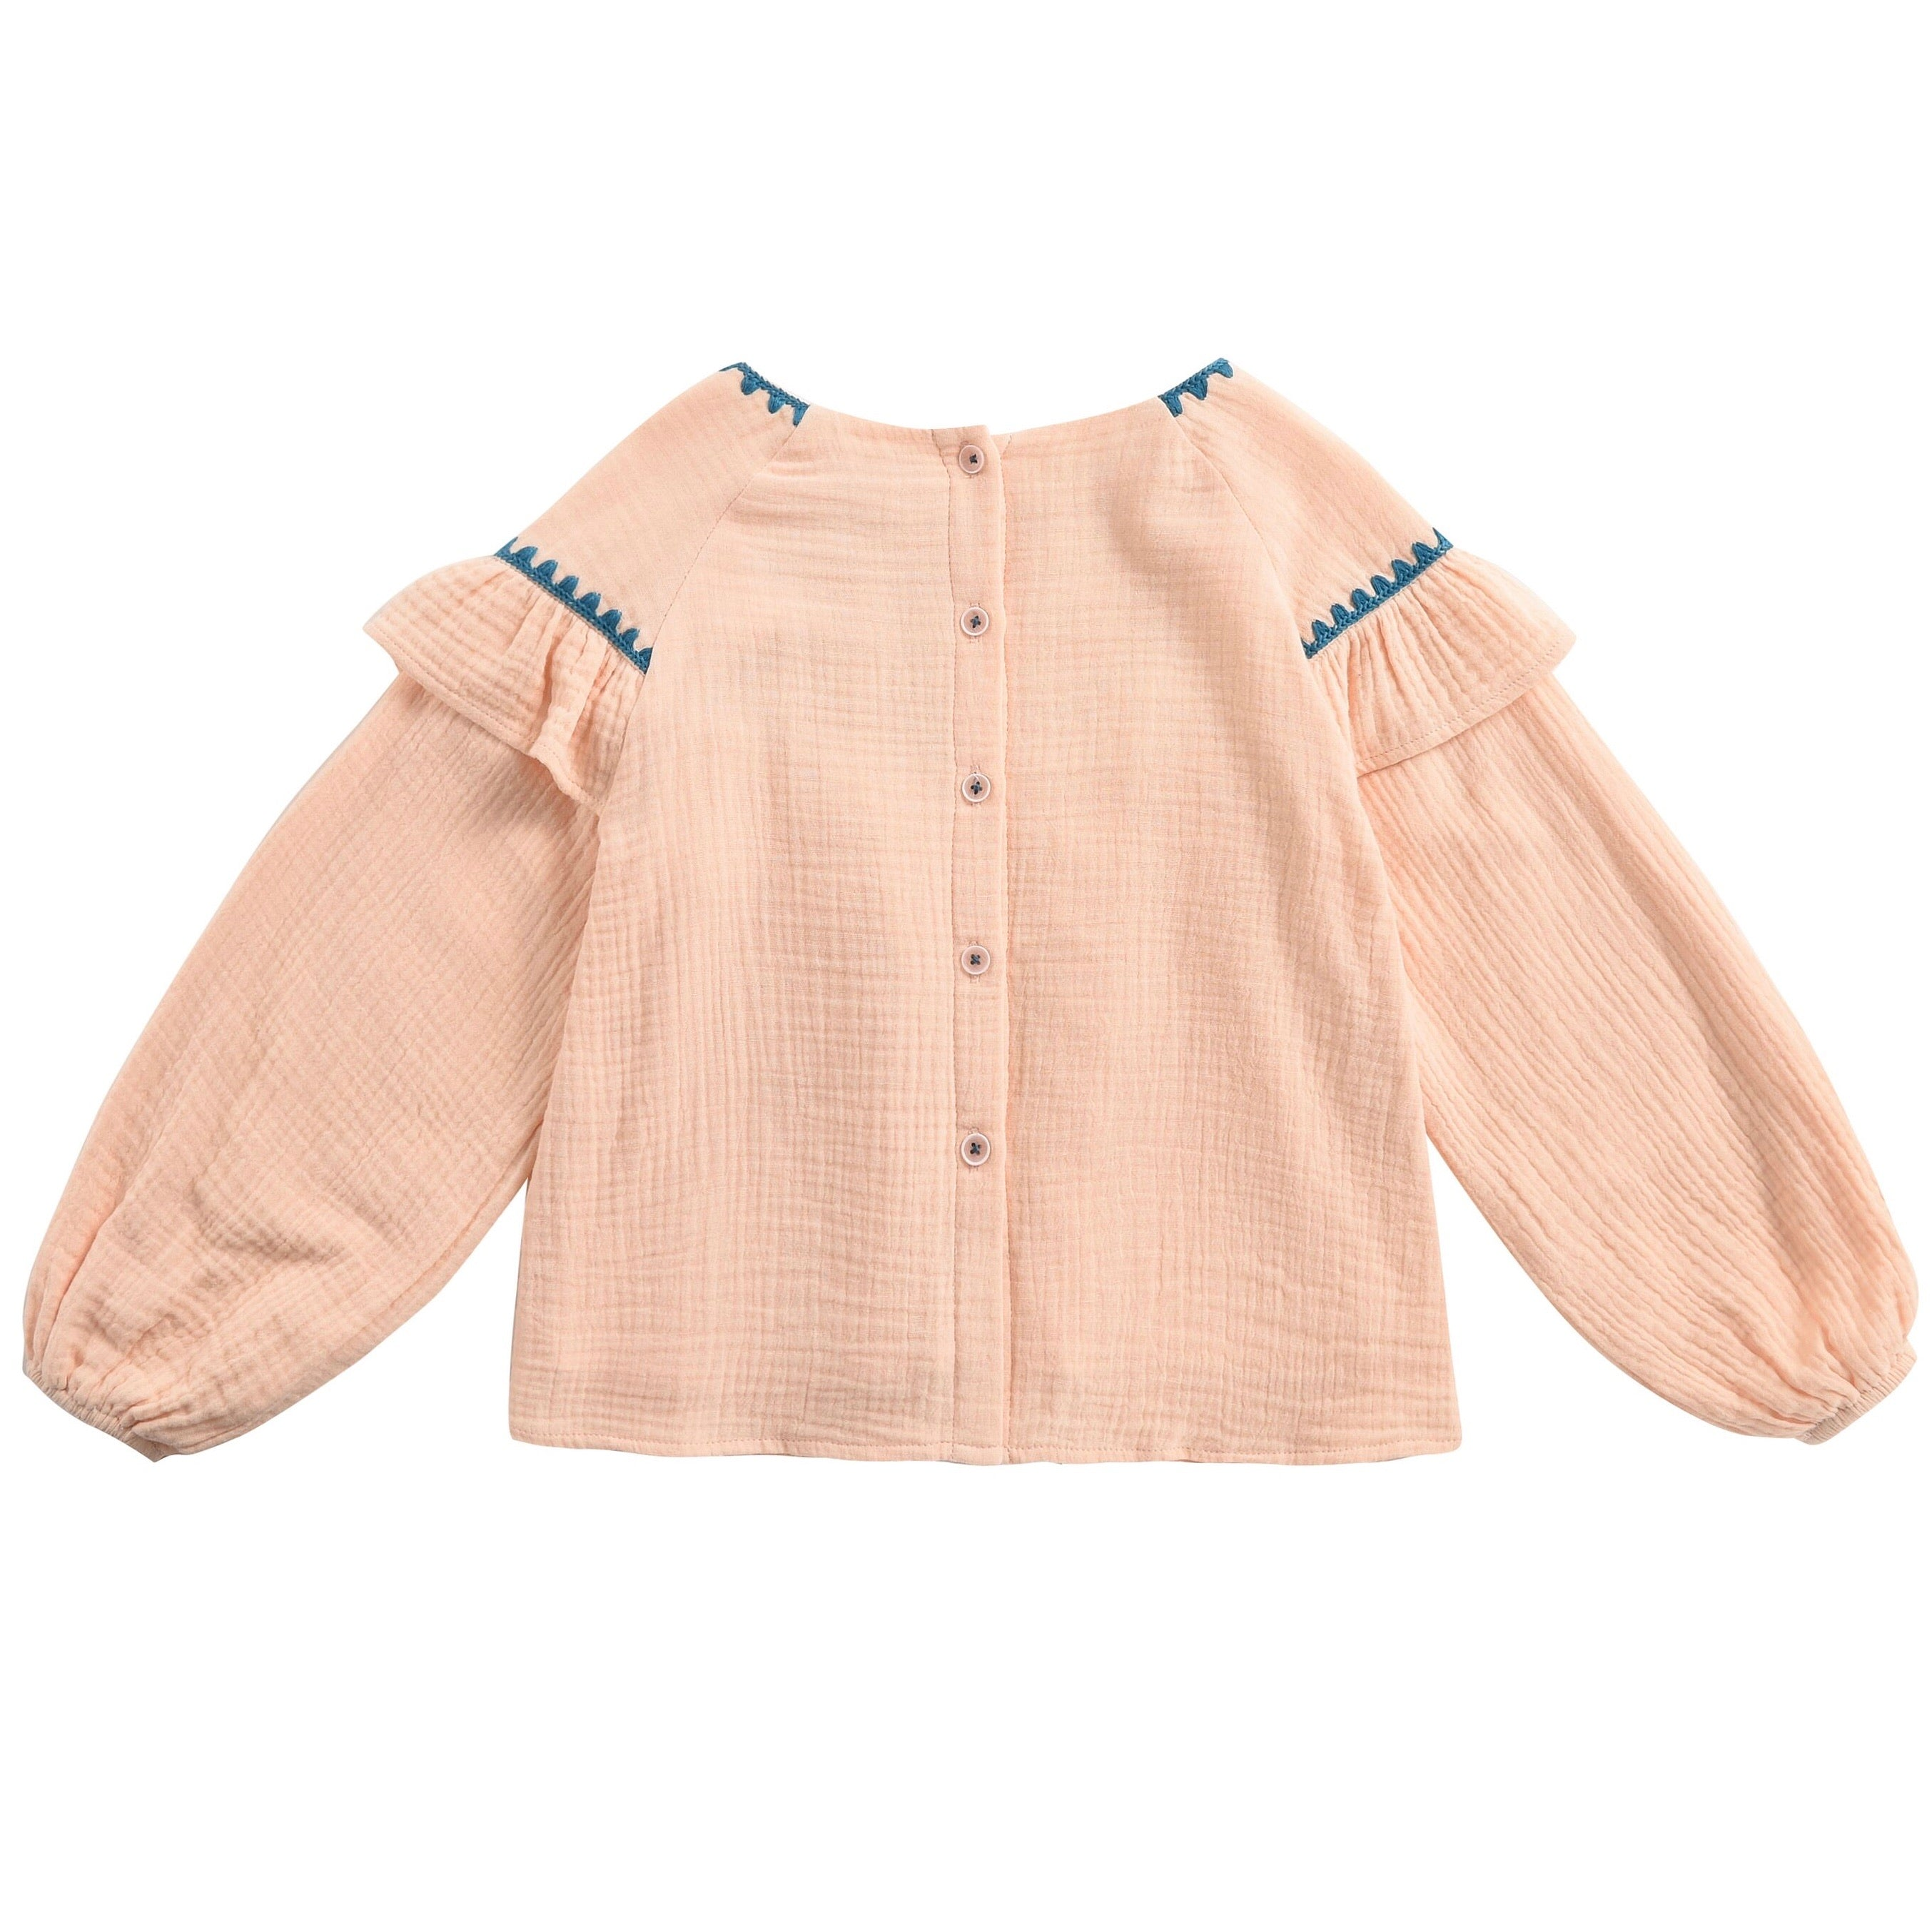 Blouse Andrea Blush